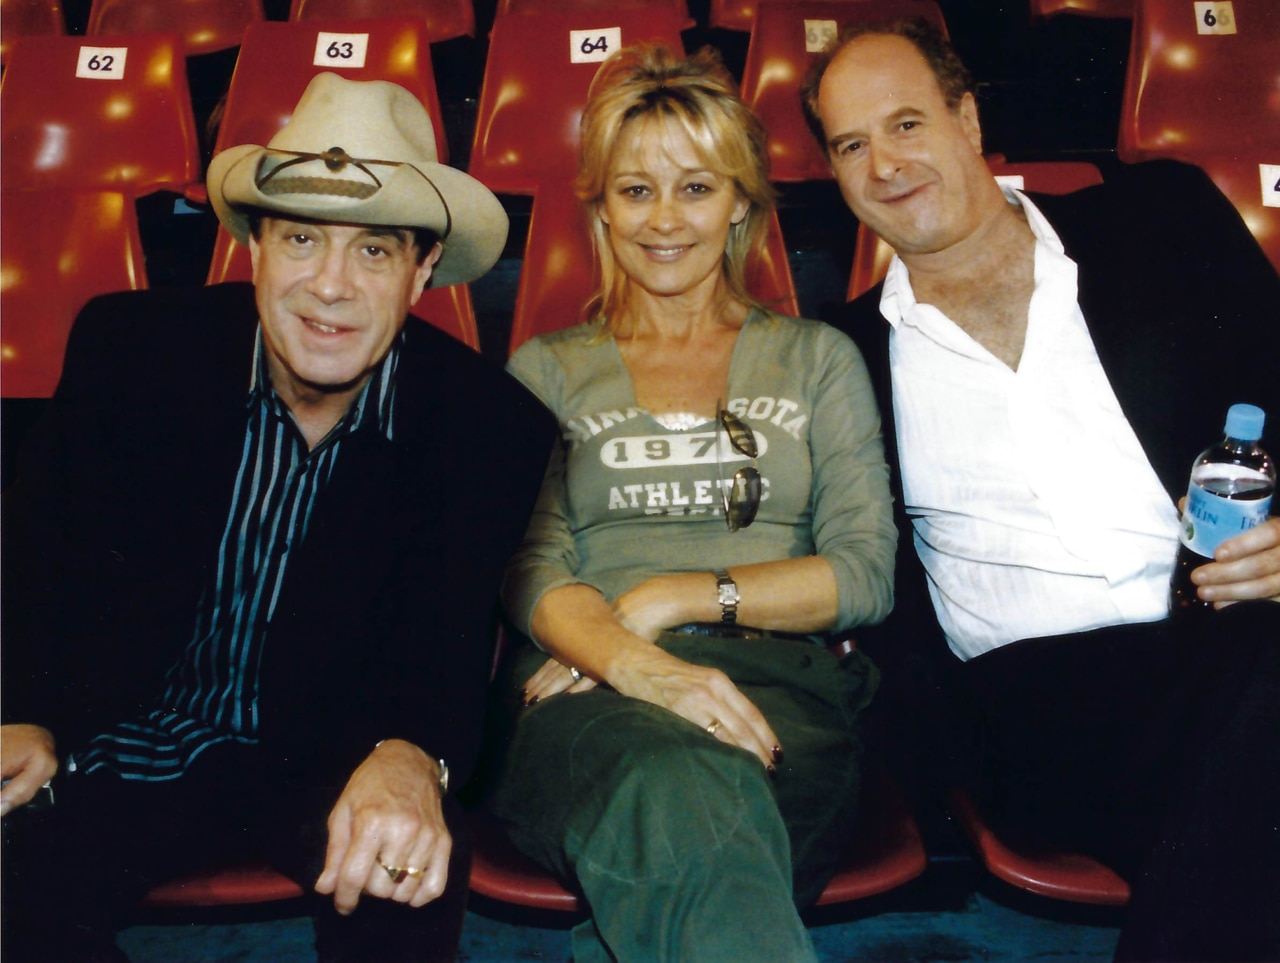 Molly Meldrum (left) with Sue and Michael Gudinski.